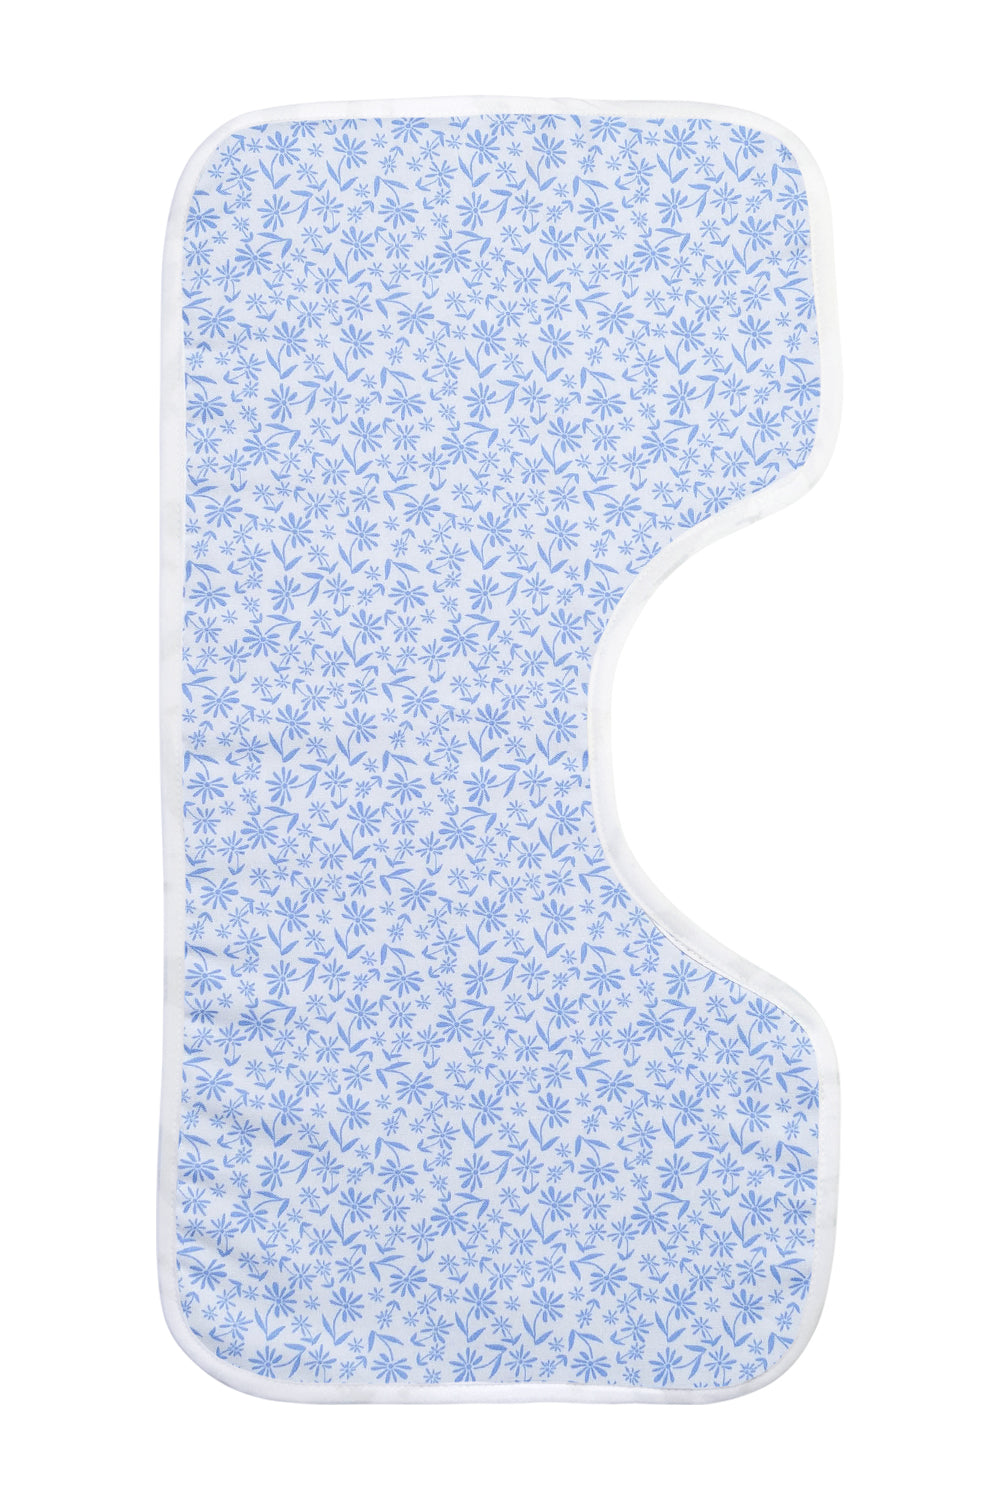 Organic Burp Cloths Blue Floral Pattern